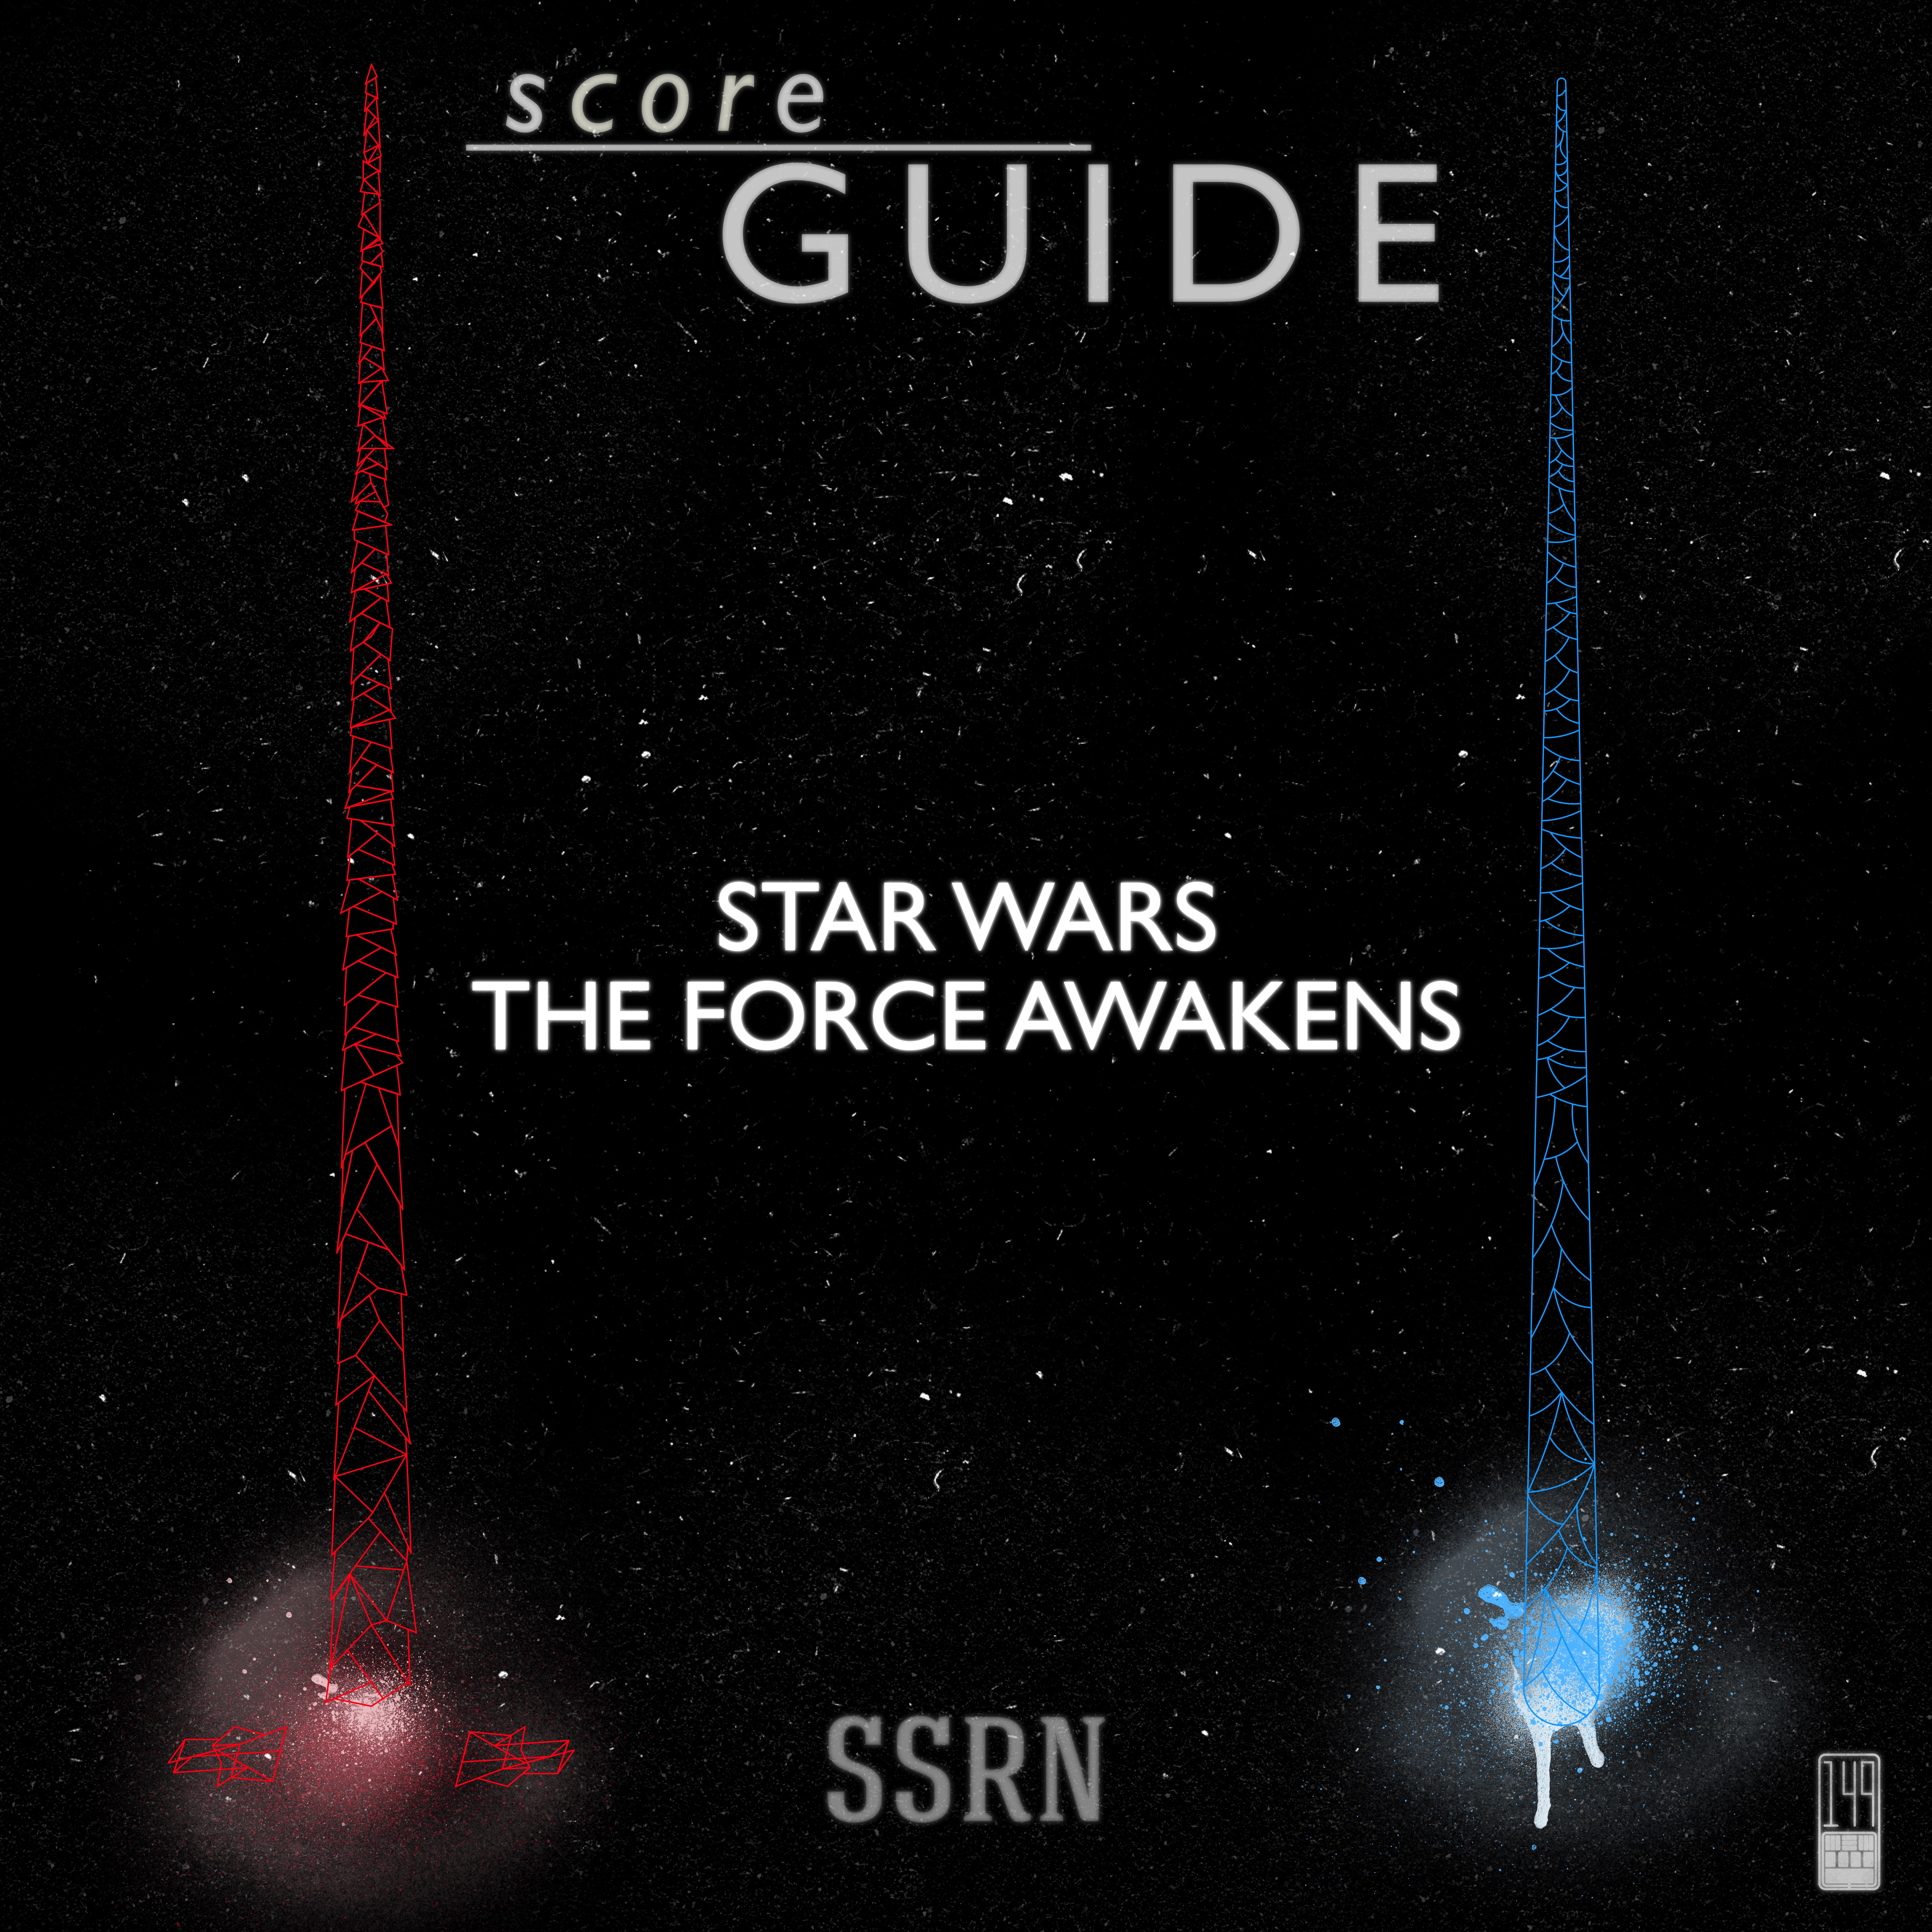 Star Wars The Force Awakens Artwork for our Film Soundtrack Podcast